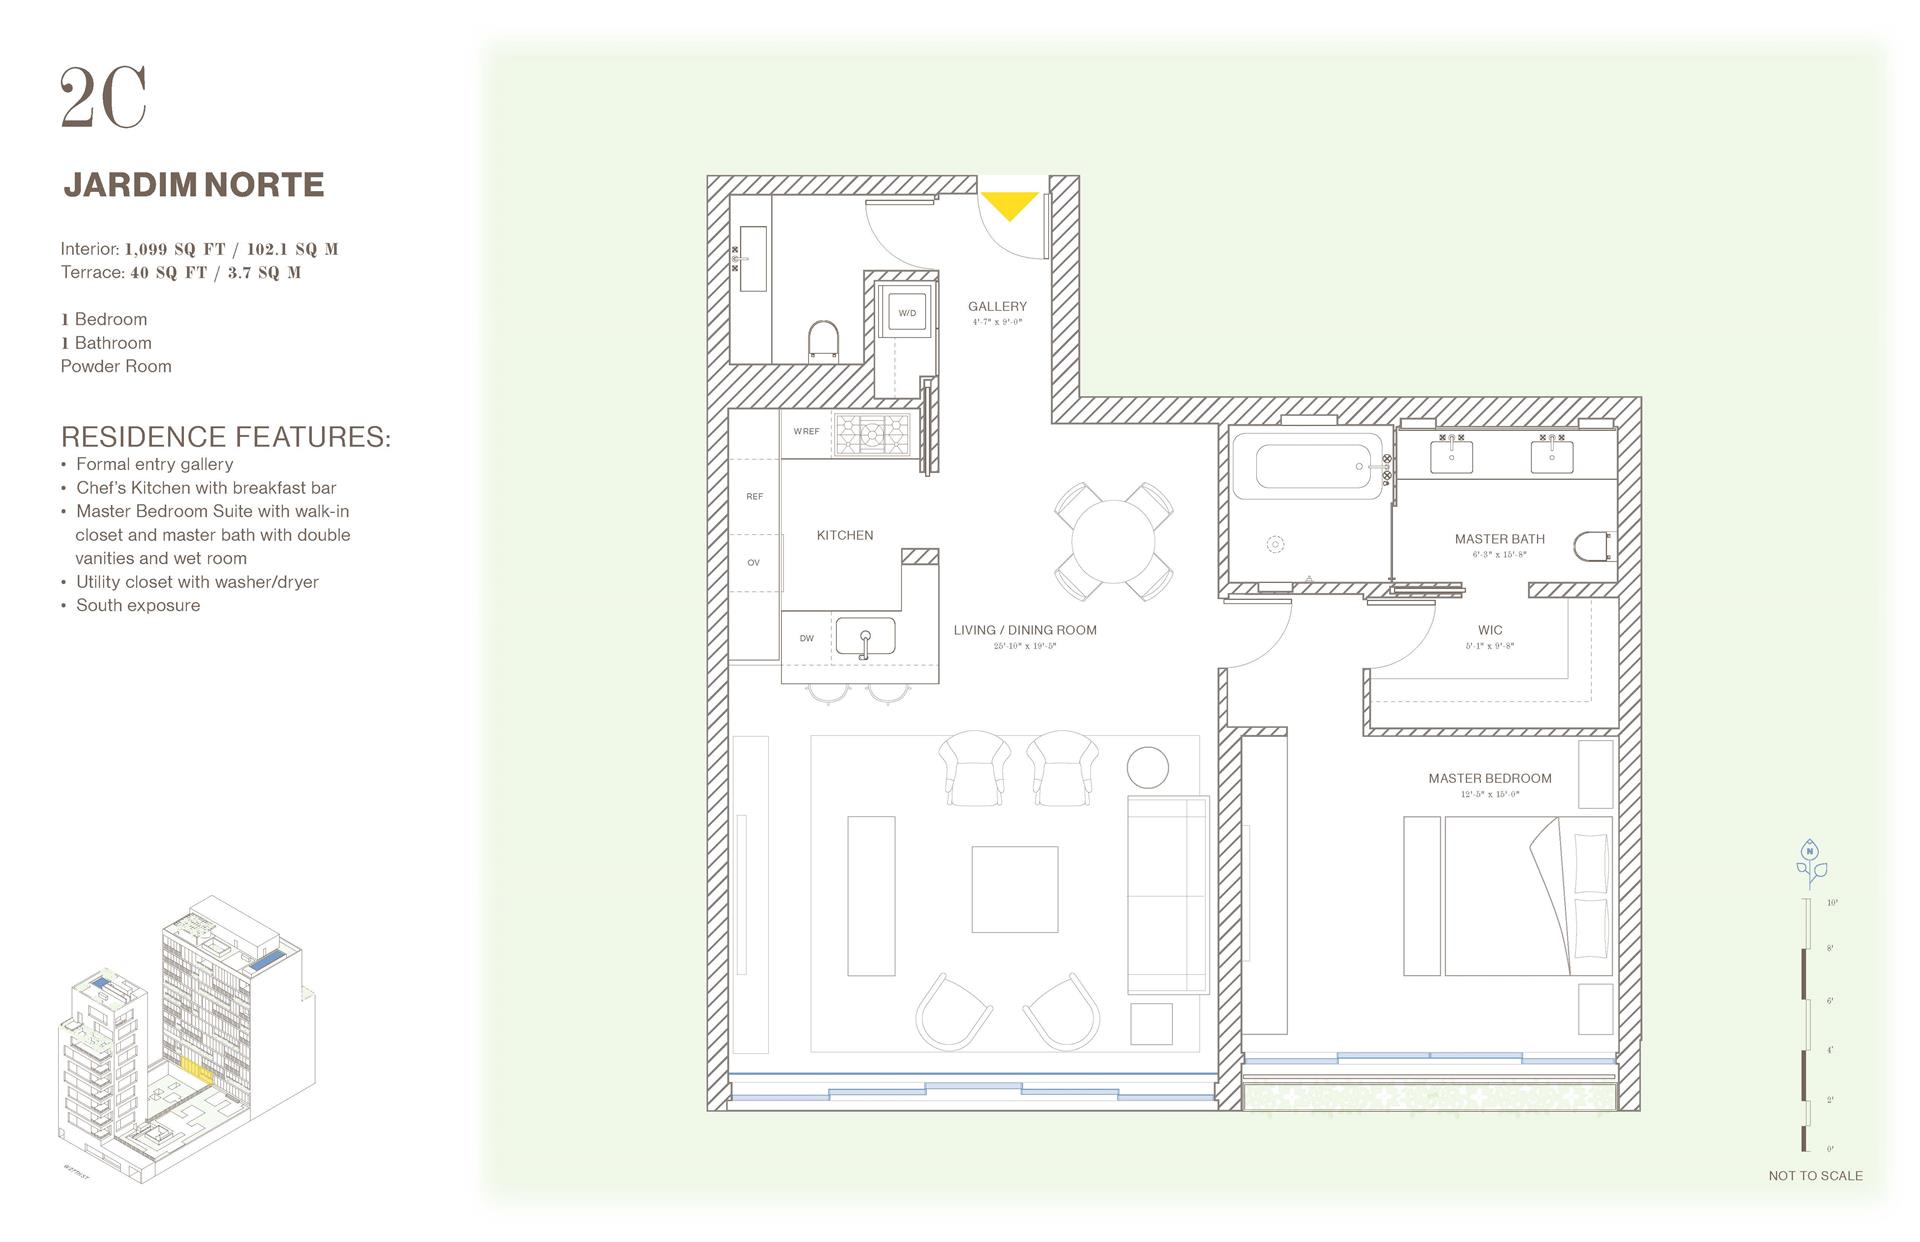 Floor plan of Jardim, 527 West 27th St, 2C - Chelsea, New York